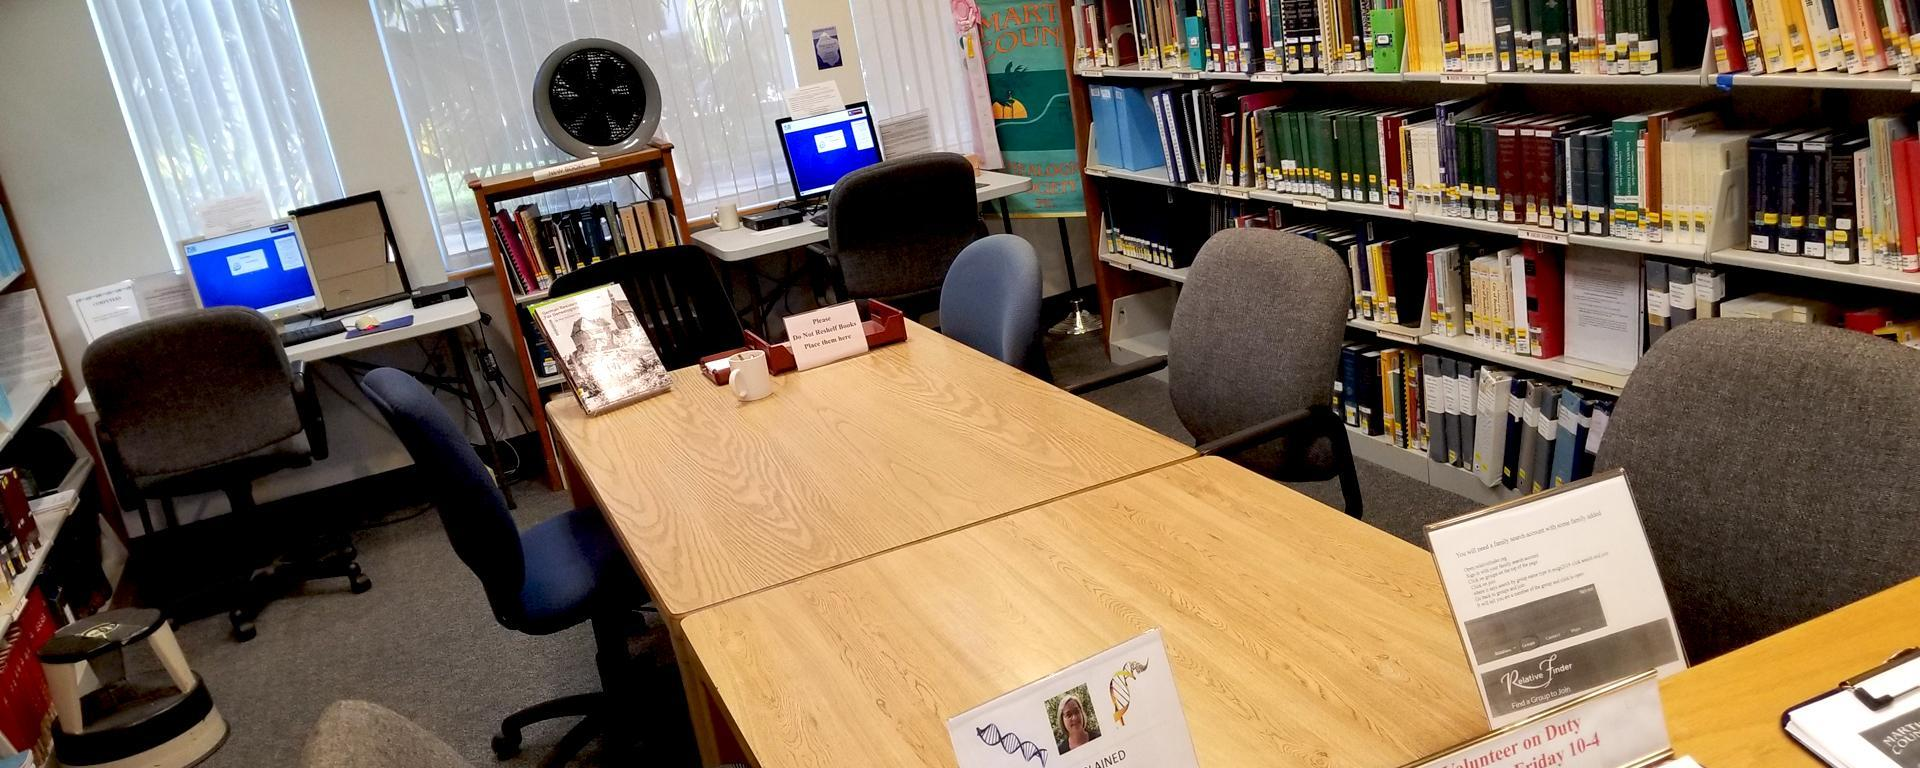 The genealogy room at the Blake Library